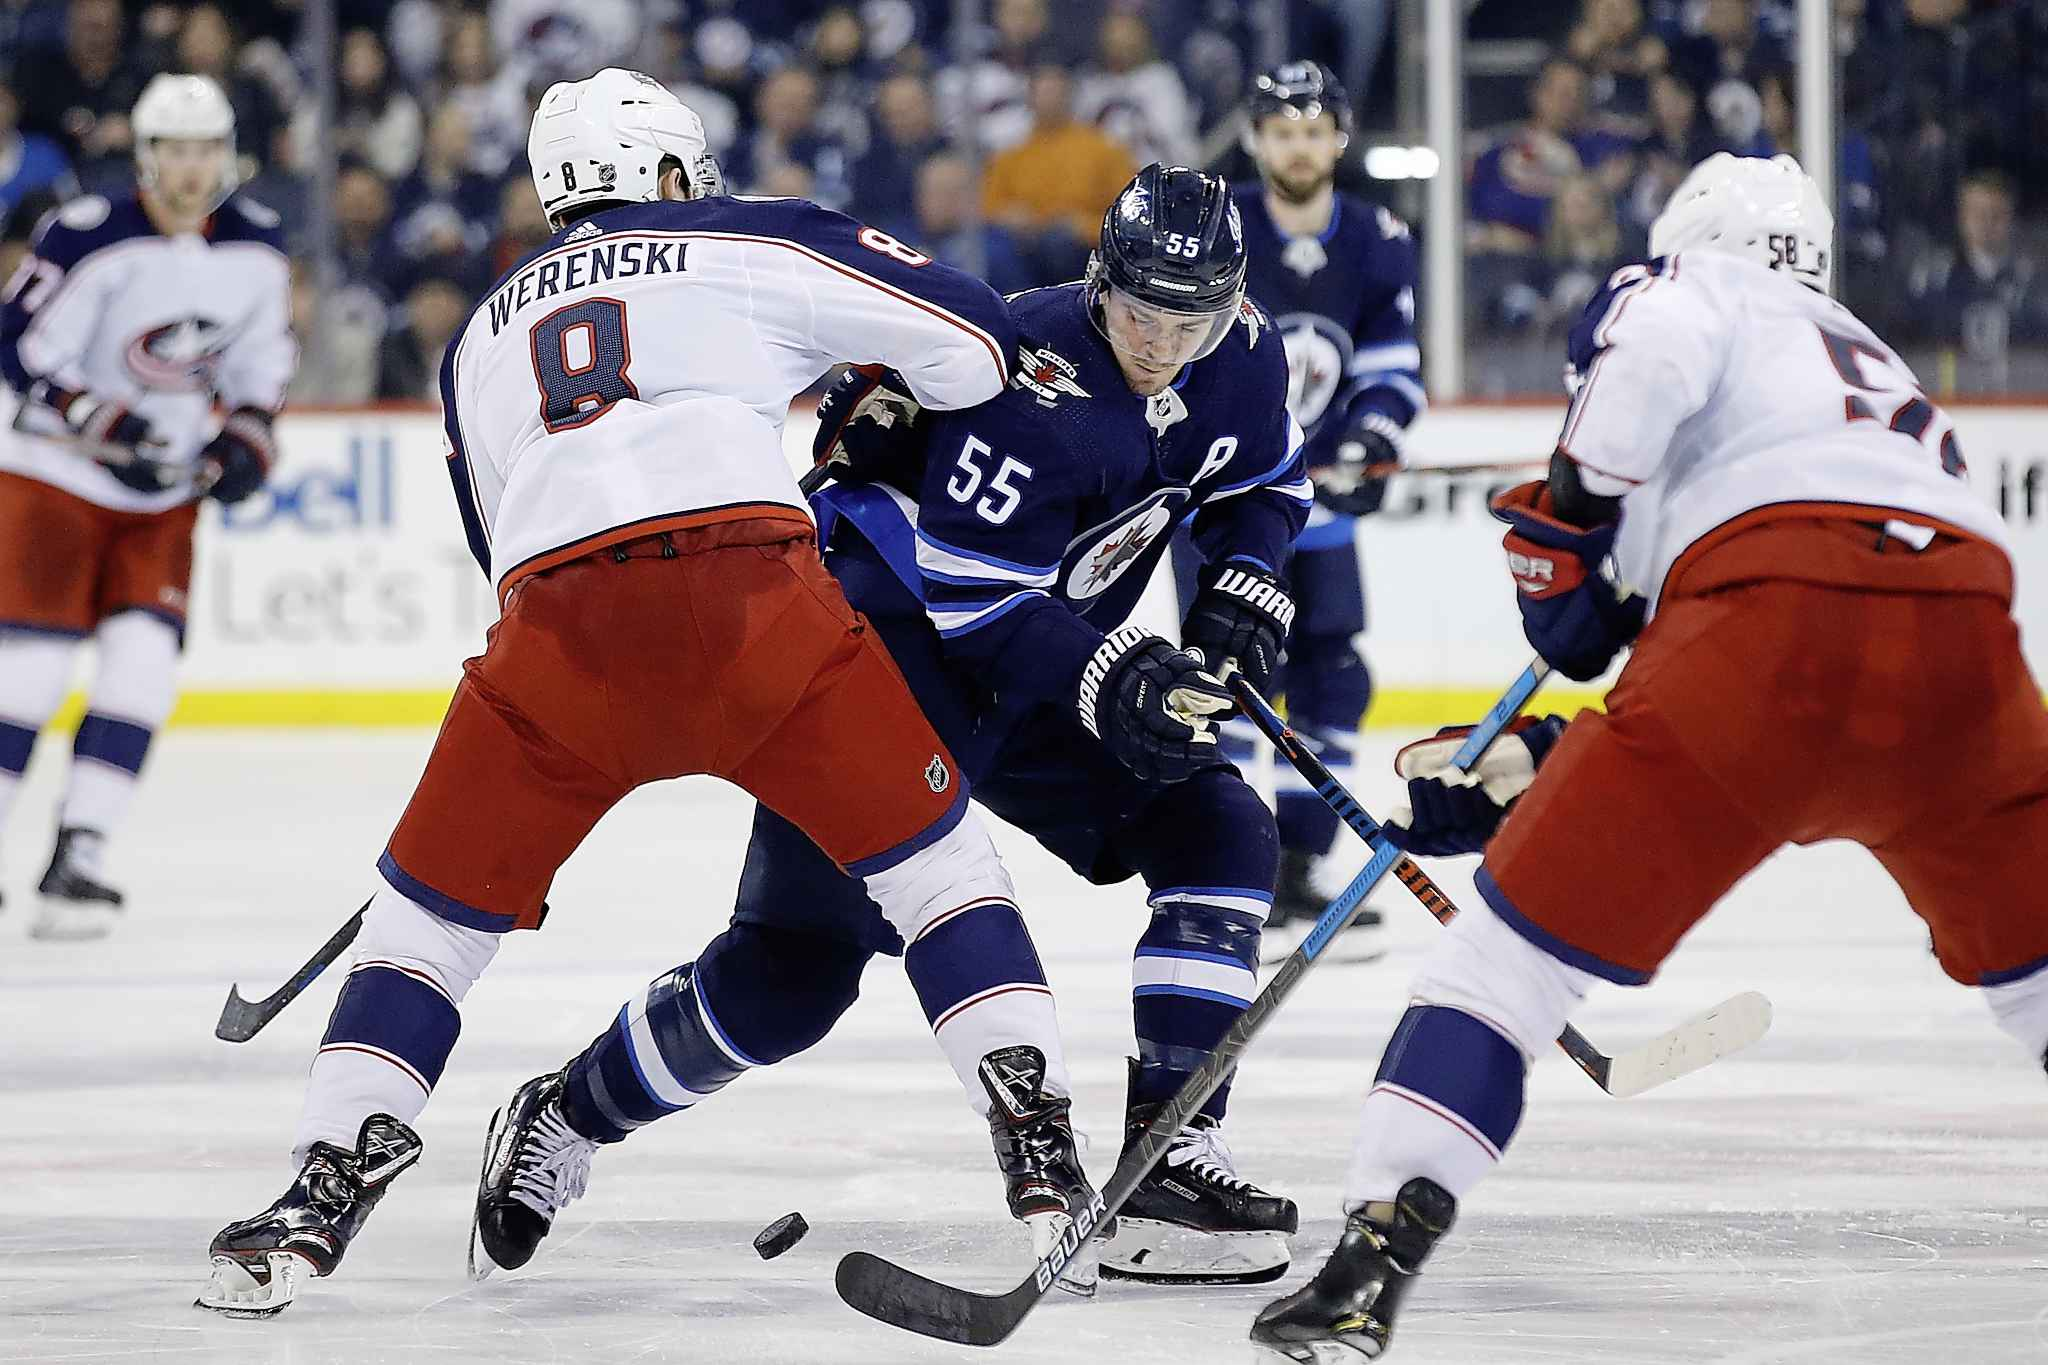 Zach Werenski, from Columbus Blue Jackets, gets a two minute interference penalty against Mark Scheifele from Winnipeg Jets during the second season of the NHL action Thursday.